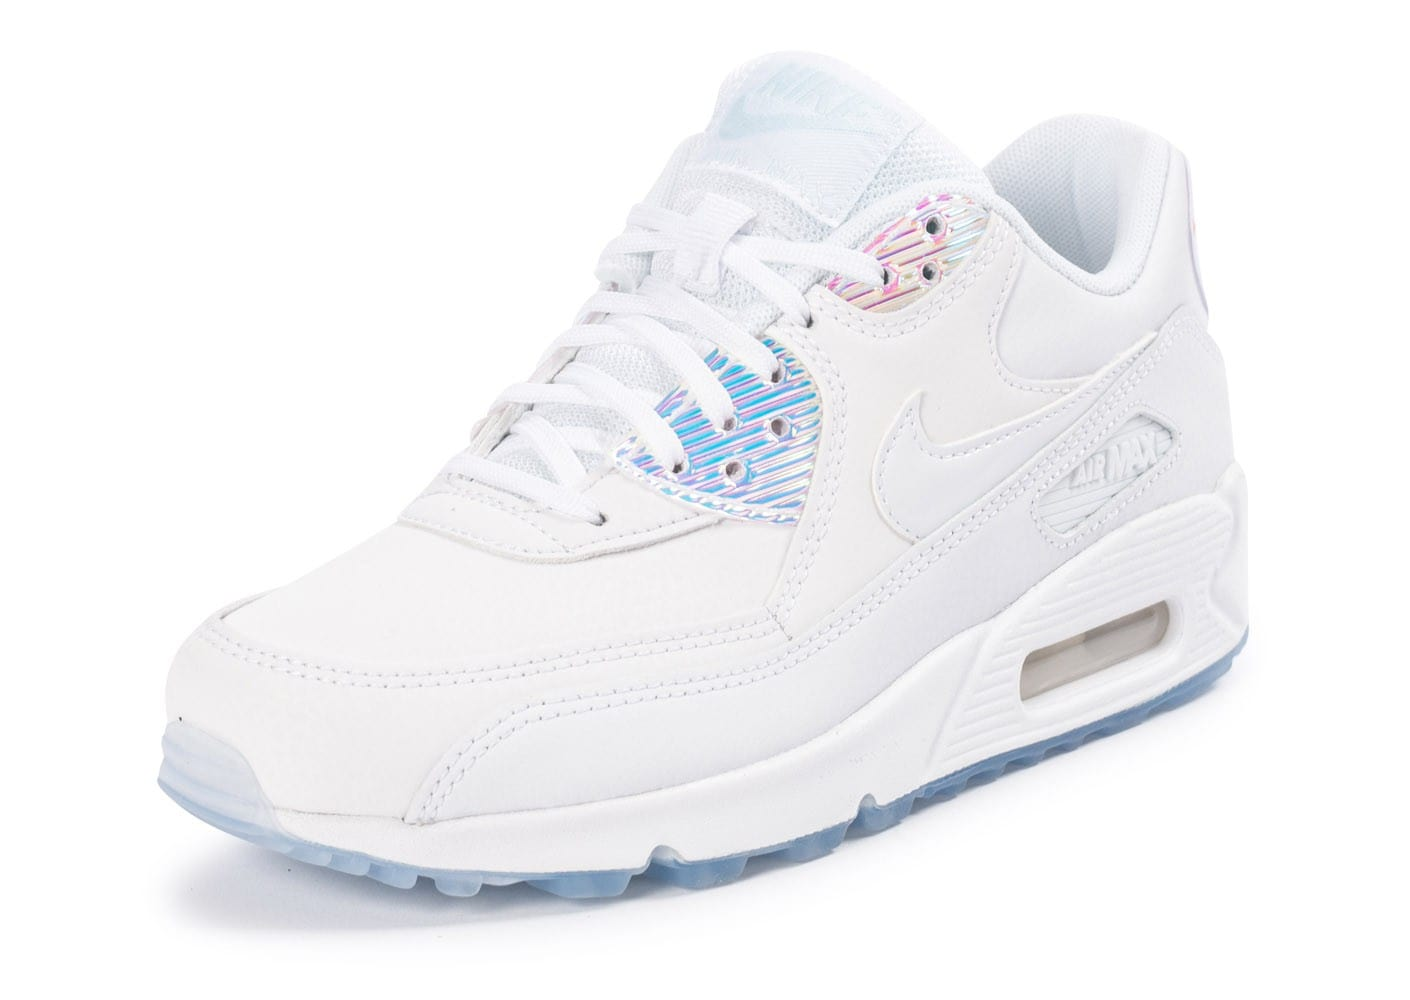 plus récent 396b4 60b5a nike air max 90 iridescent femme